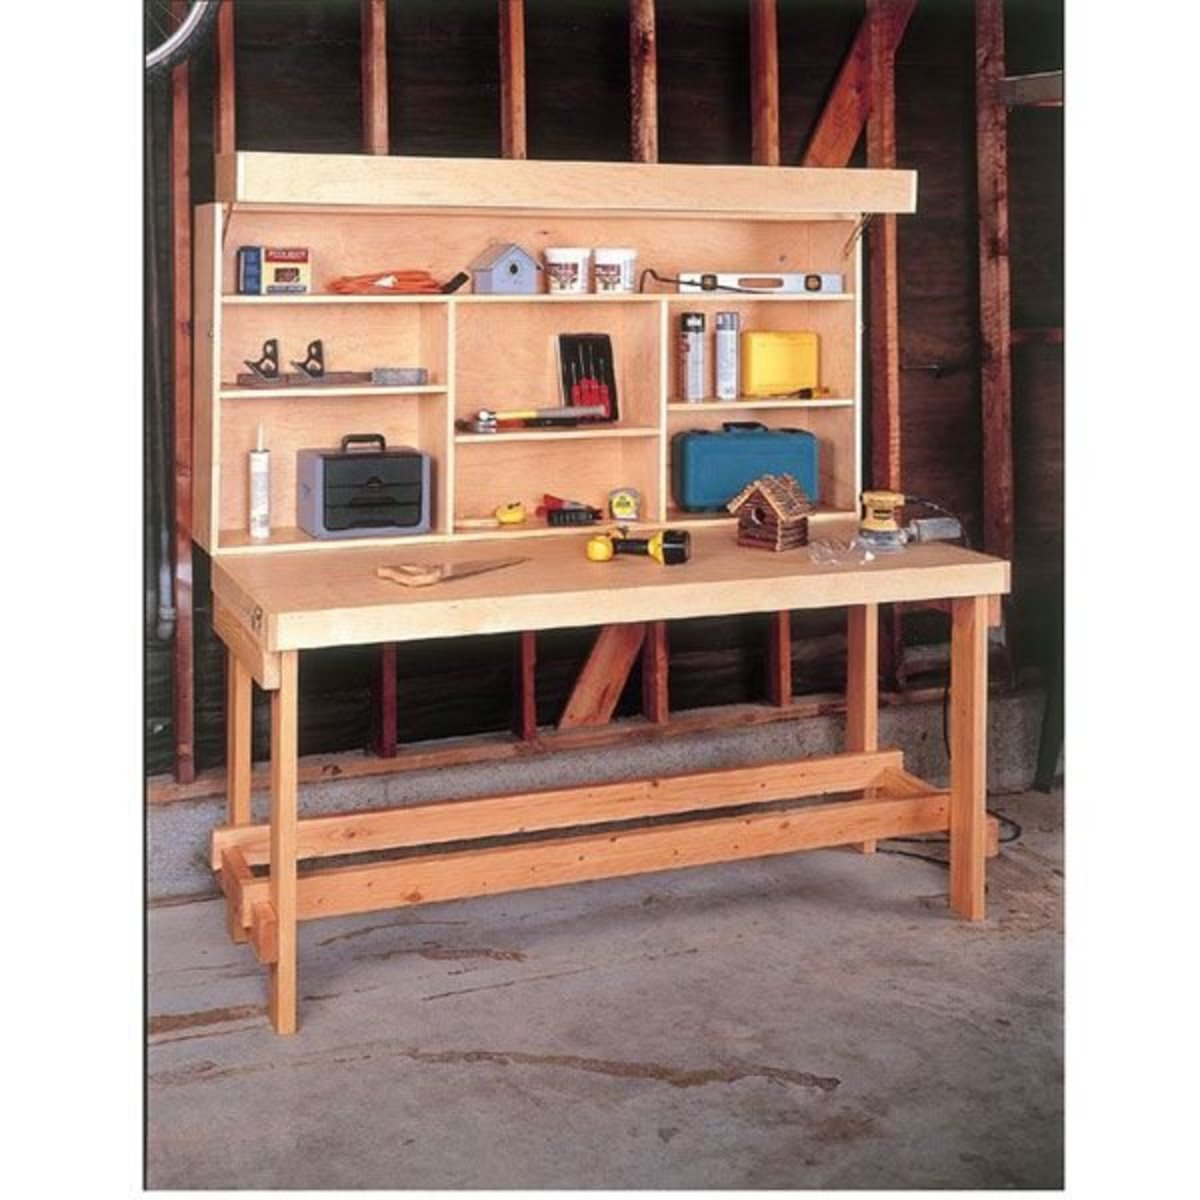 Strange U Bild Woodworking Project Paper Plan To Build Space Saver Pdpeps Interior Chair Design Pdpepsorg